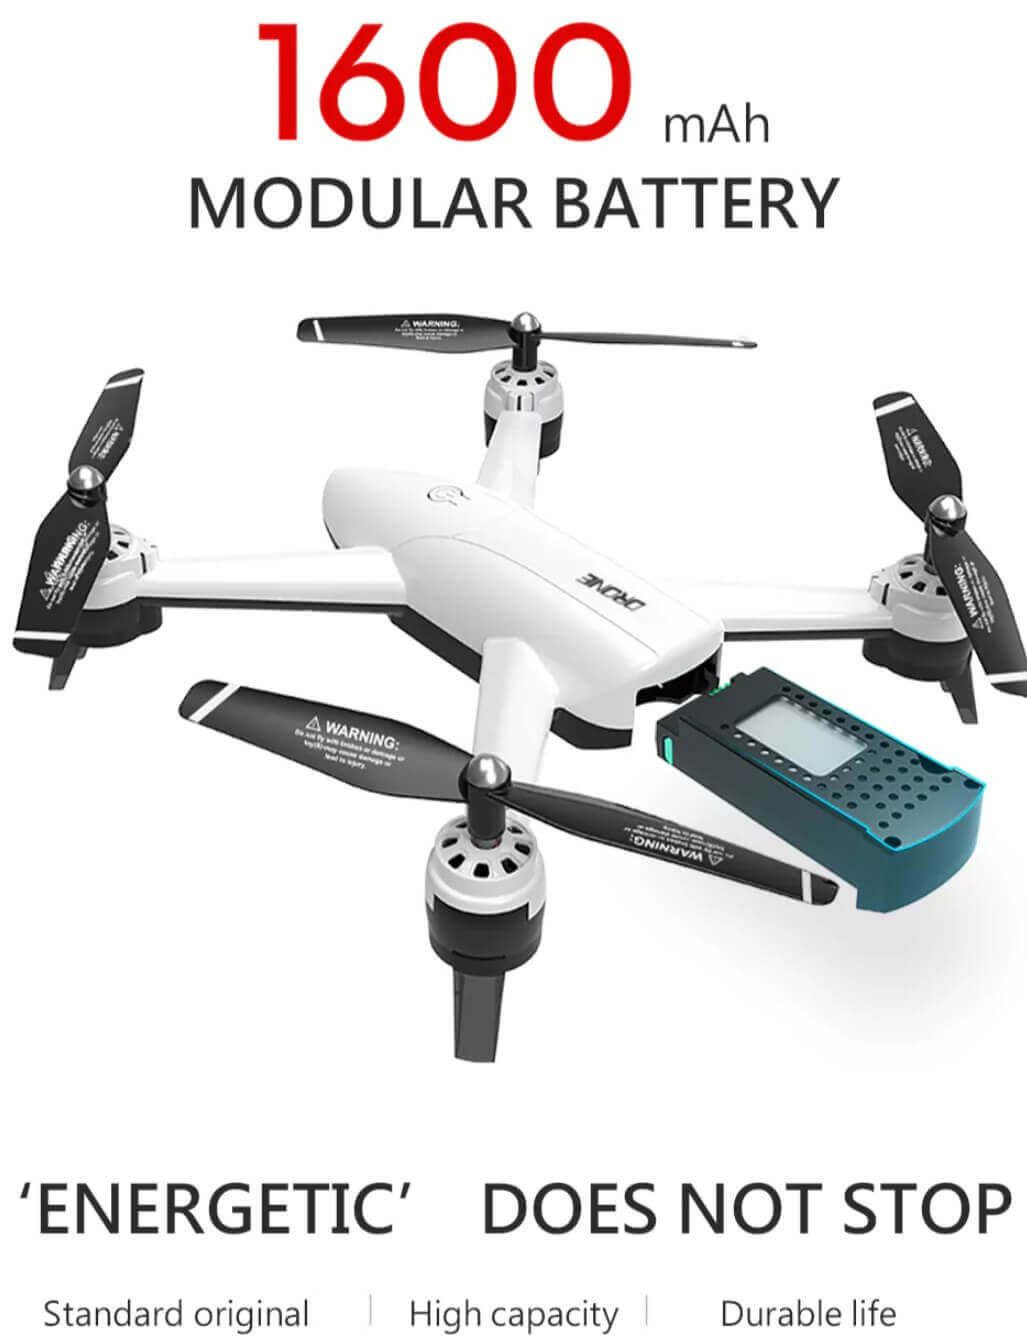 FPV RC Helicopter Quadcopter Wifi Drone Camera Sale